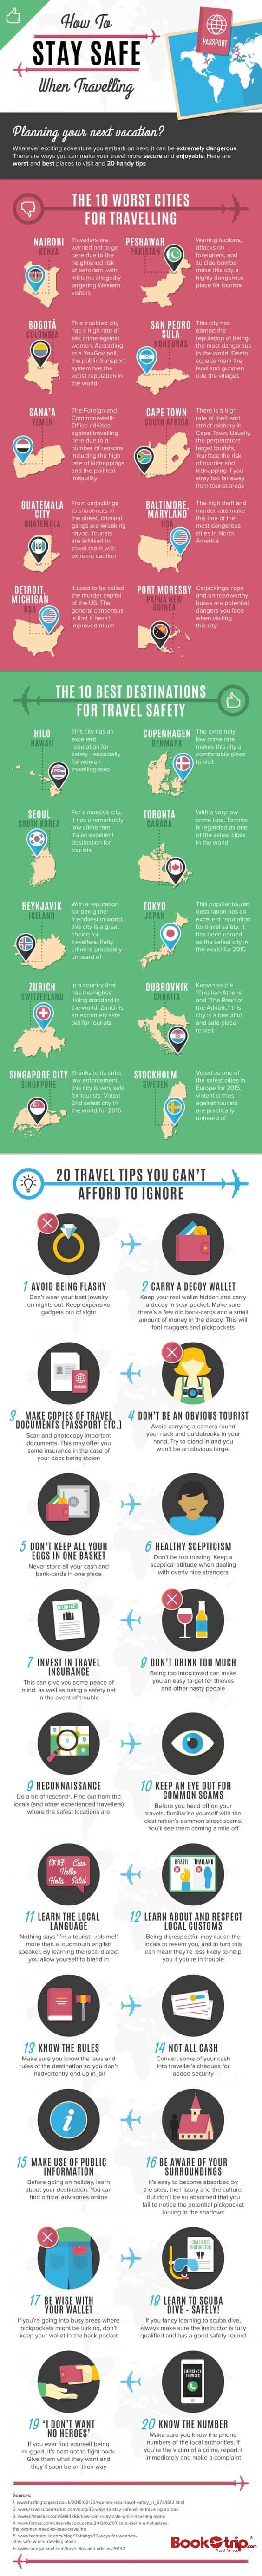 How To Stay Safe On Vacation